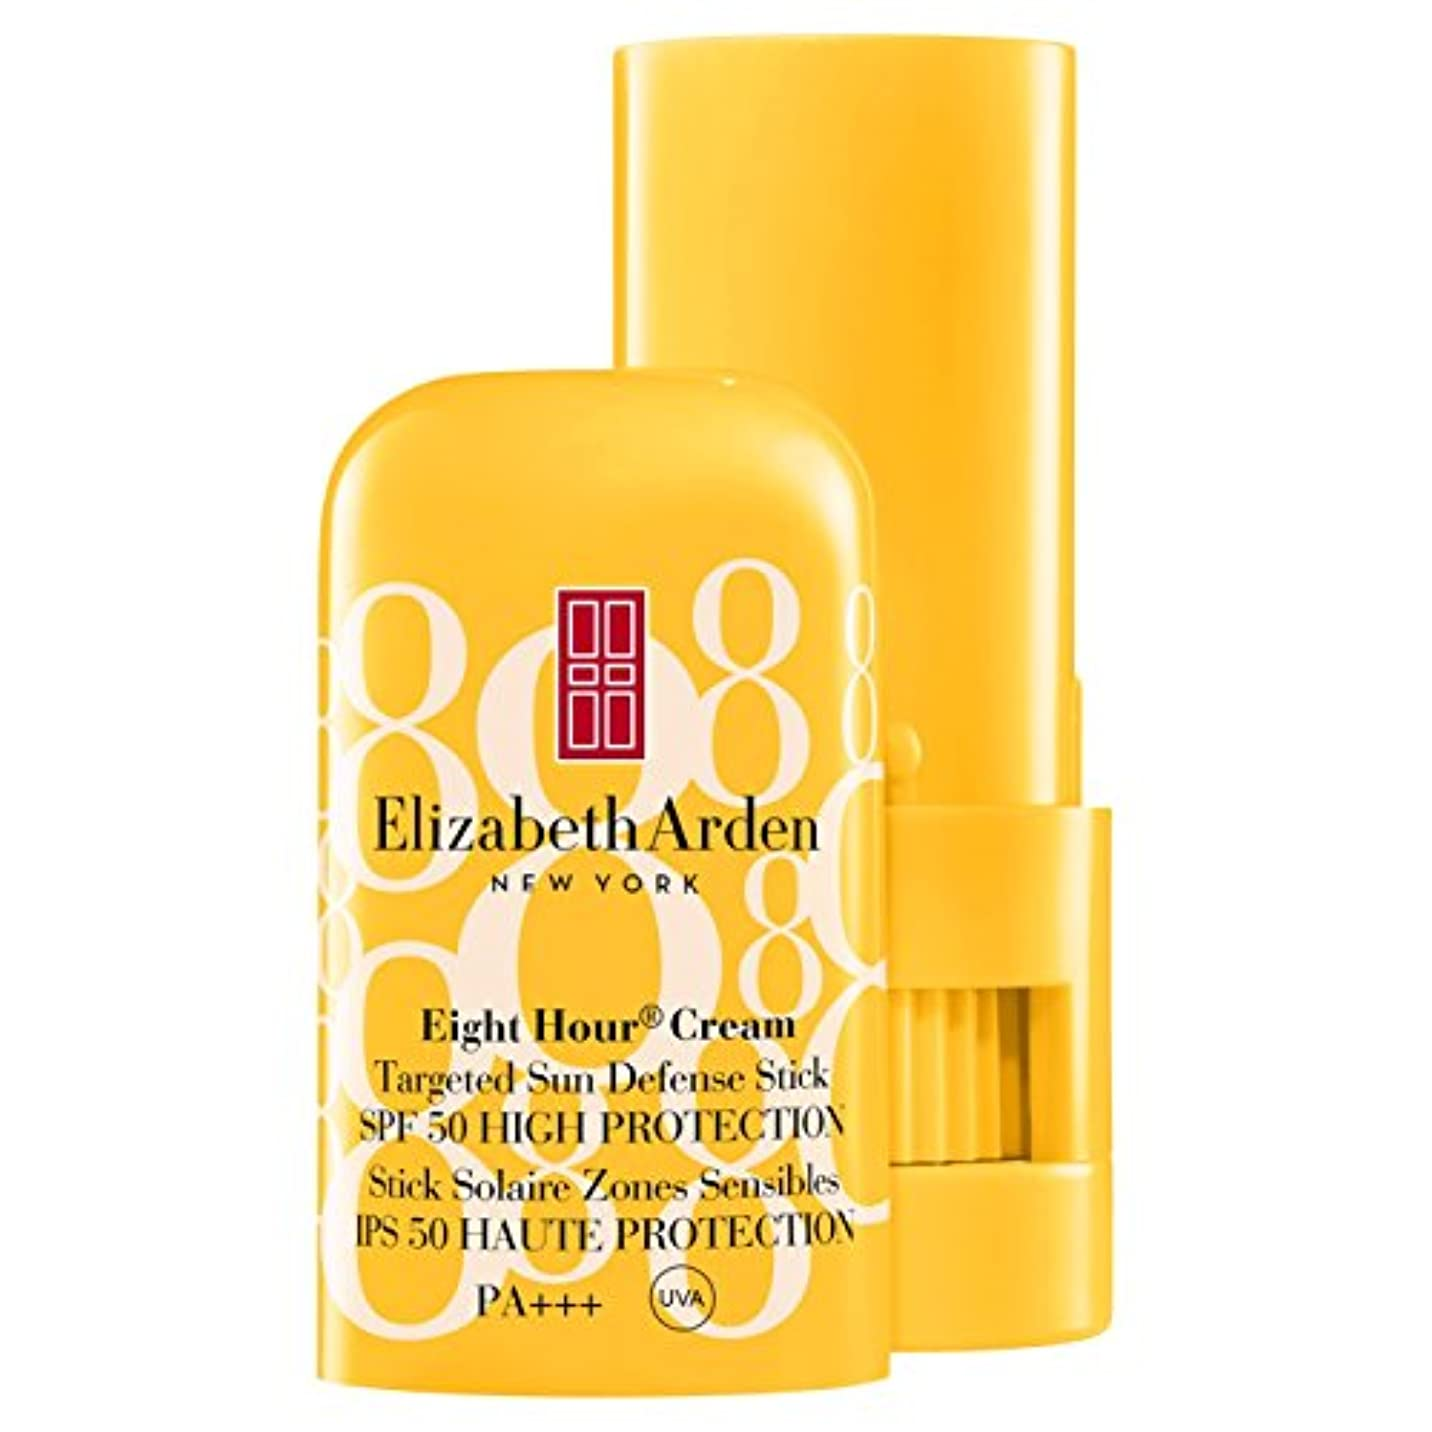 カトリック教徒特異性セミナーElizabeth Arden Eight Hour? Cream Targeted Sun Defense Stick SPF50 High Protection 15ml (Pack of 6) - エリザベスアーデン...